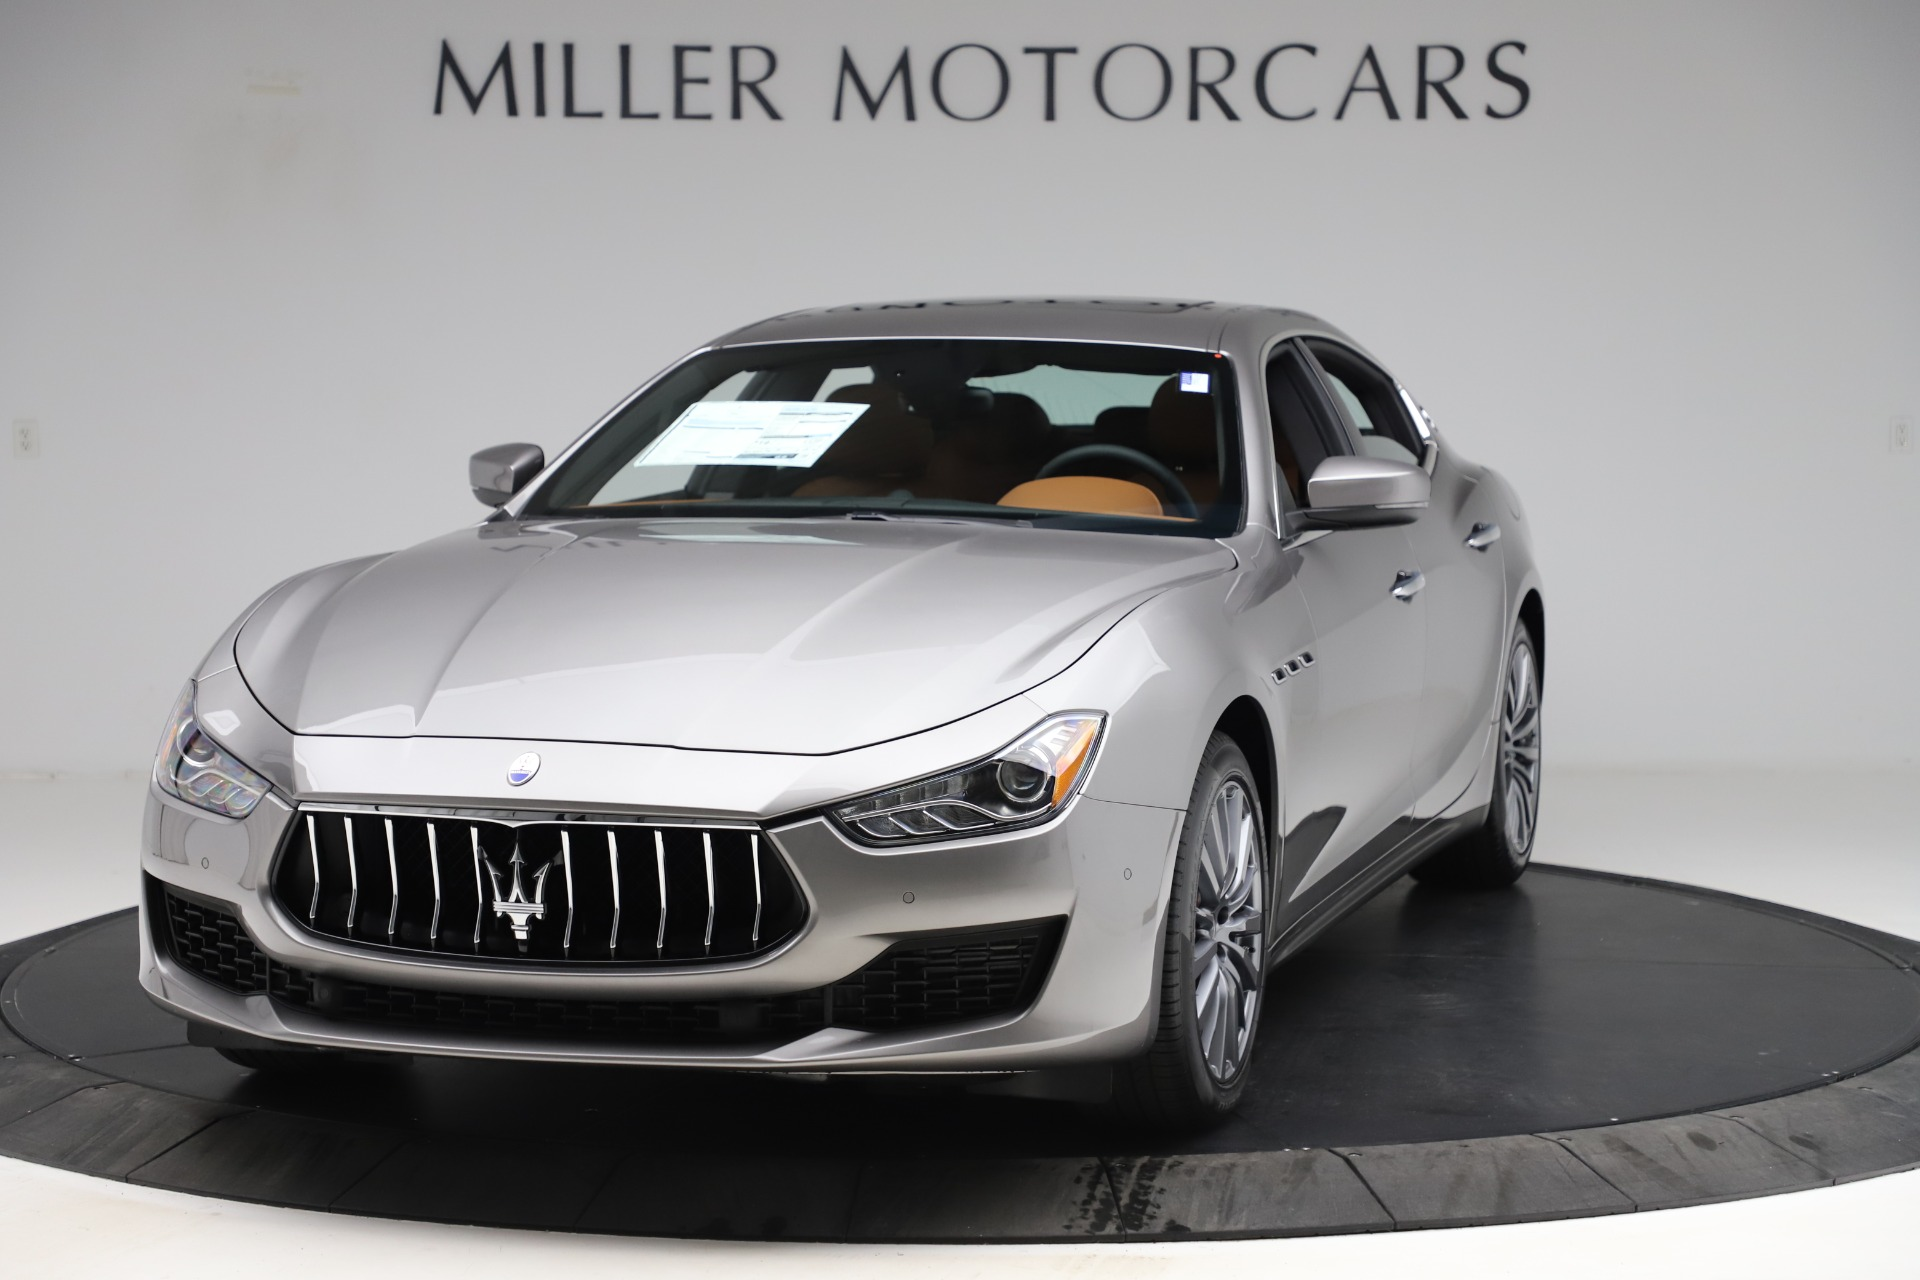 New 2020 Maserati Ghibli S Q4 for sale $79,985 at Bentley Greenwich in Greenwich CT 06830 1